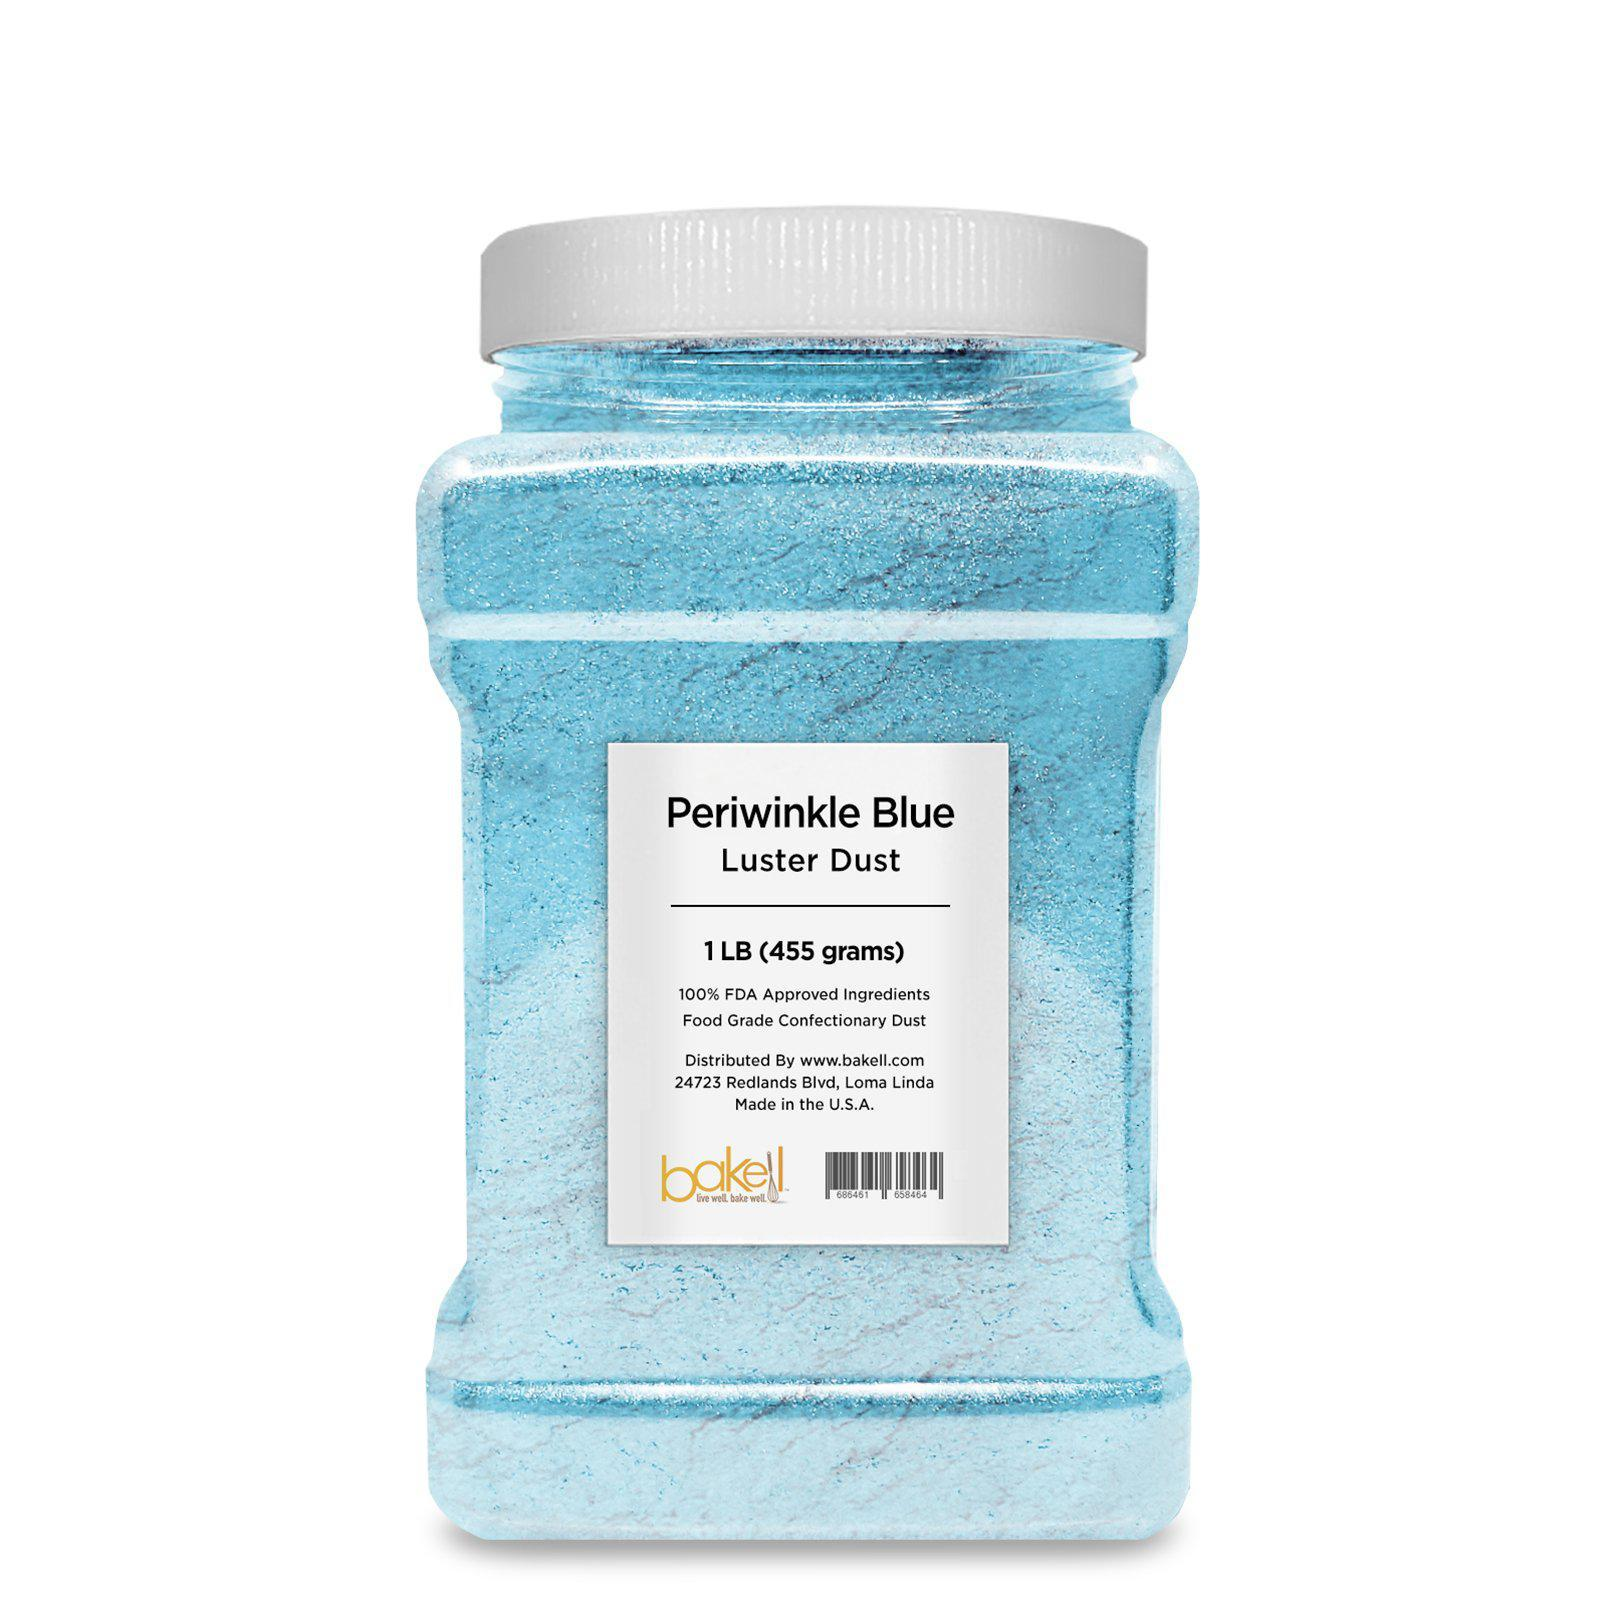 Periwinkle Blue Edible Pearlized Luster Dust-Luster Dusts-Bakell